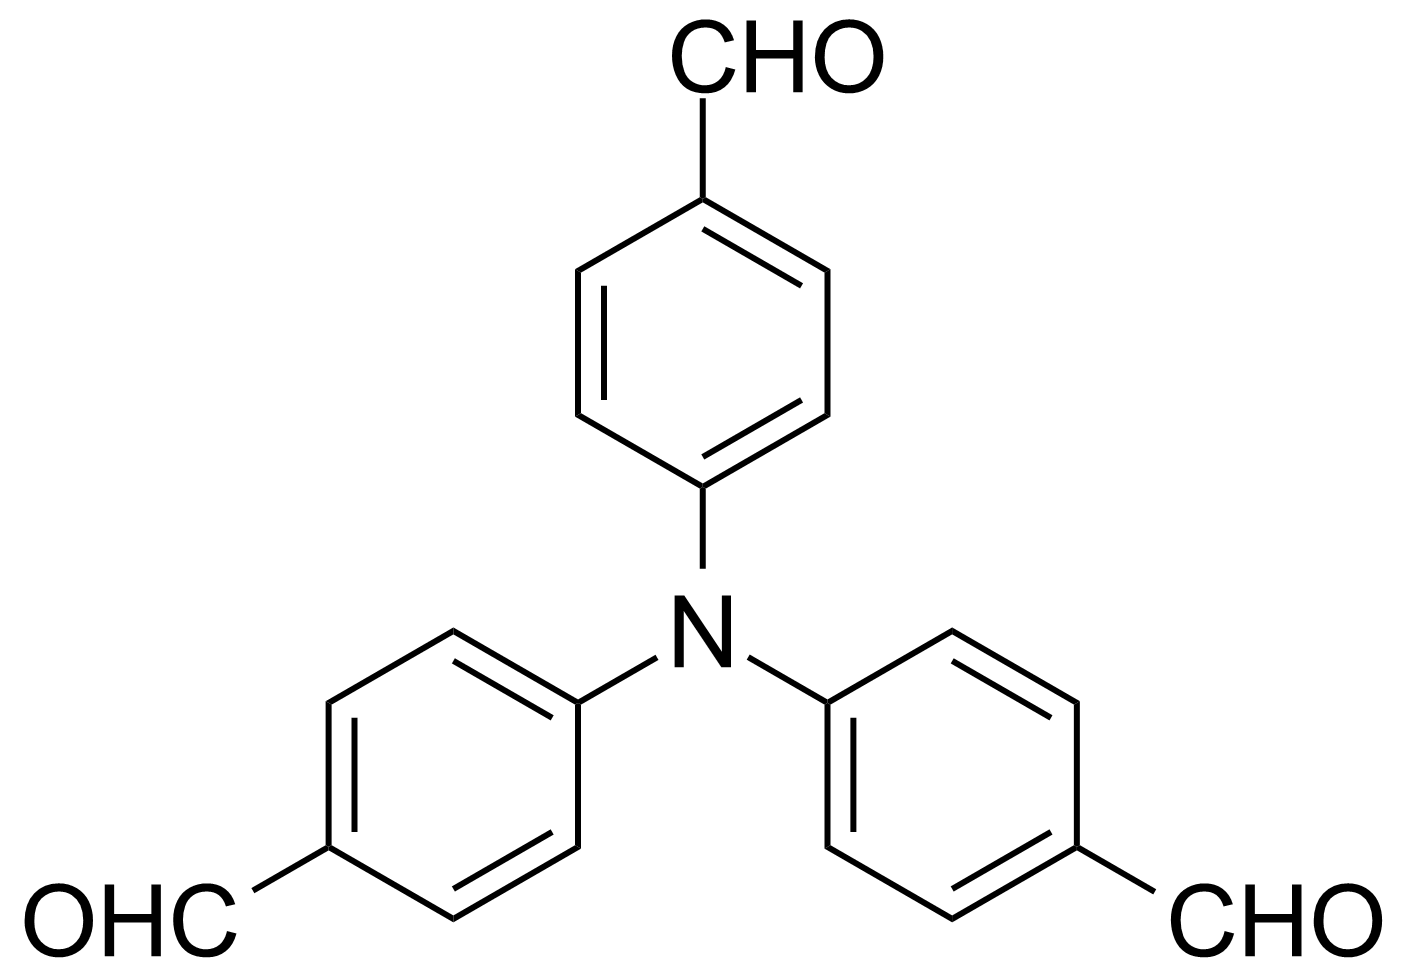 Structure of Tris(4-formylphenyl)amine